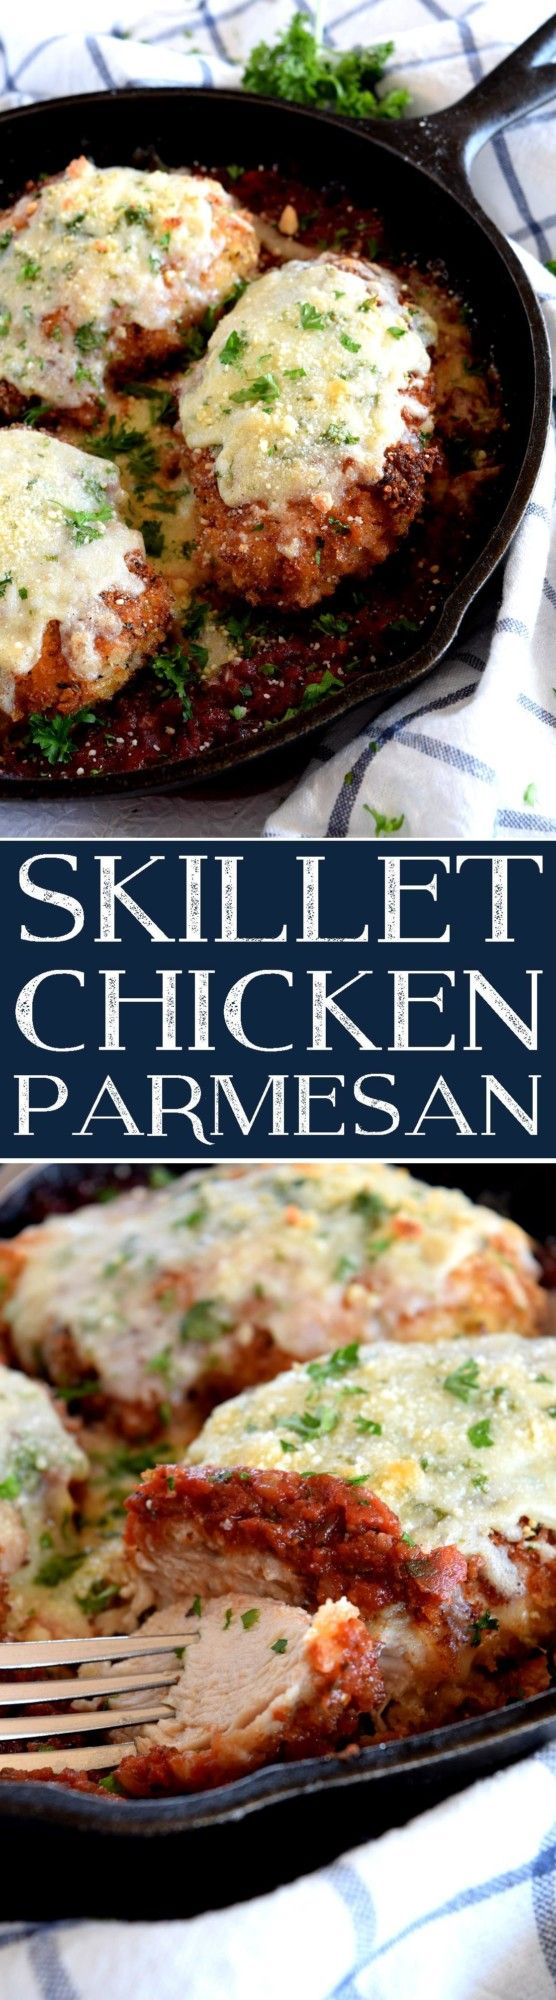 Skillet Chicken Parmesan - Lord Byron's Kitchen